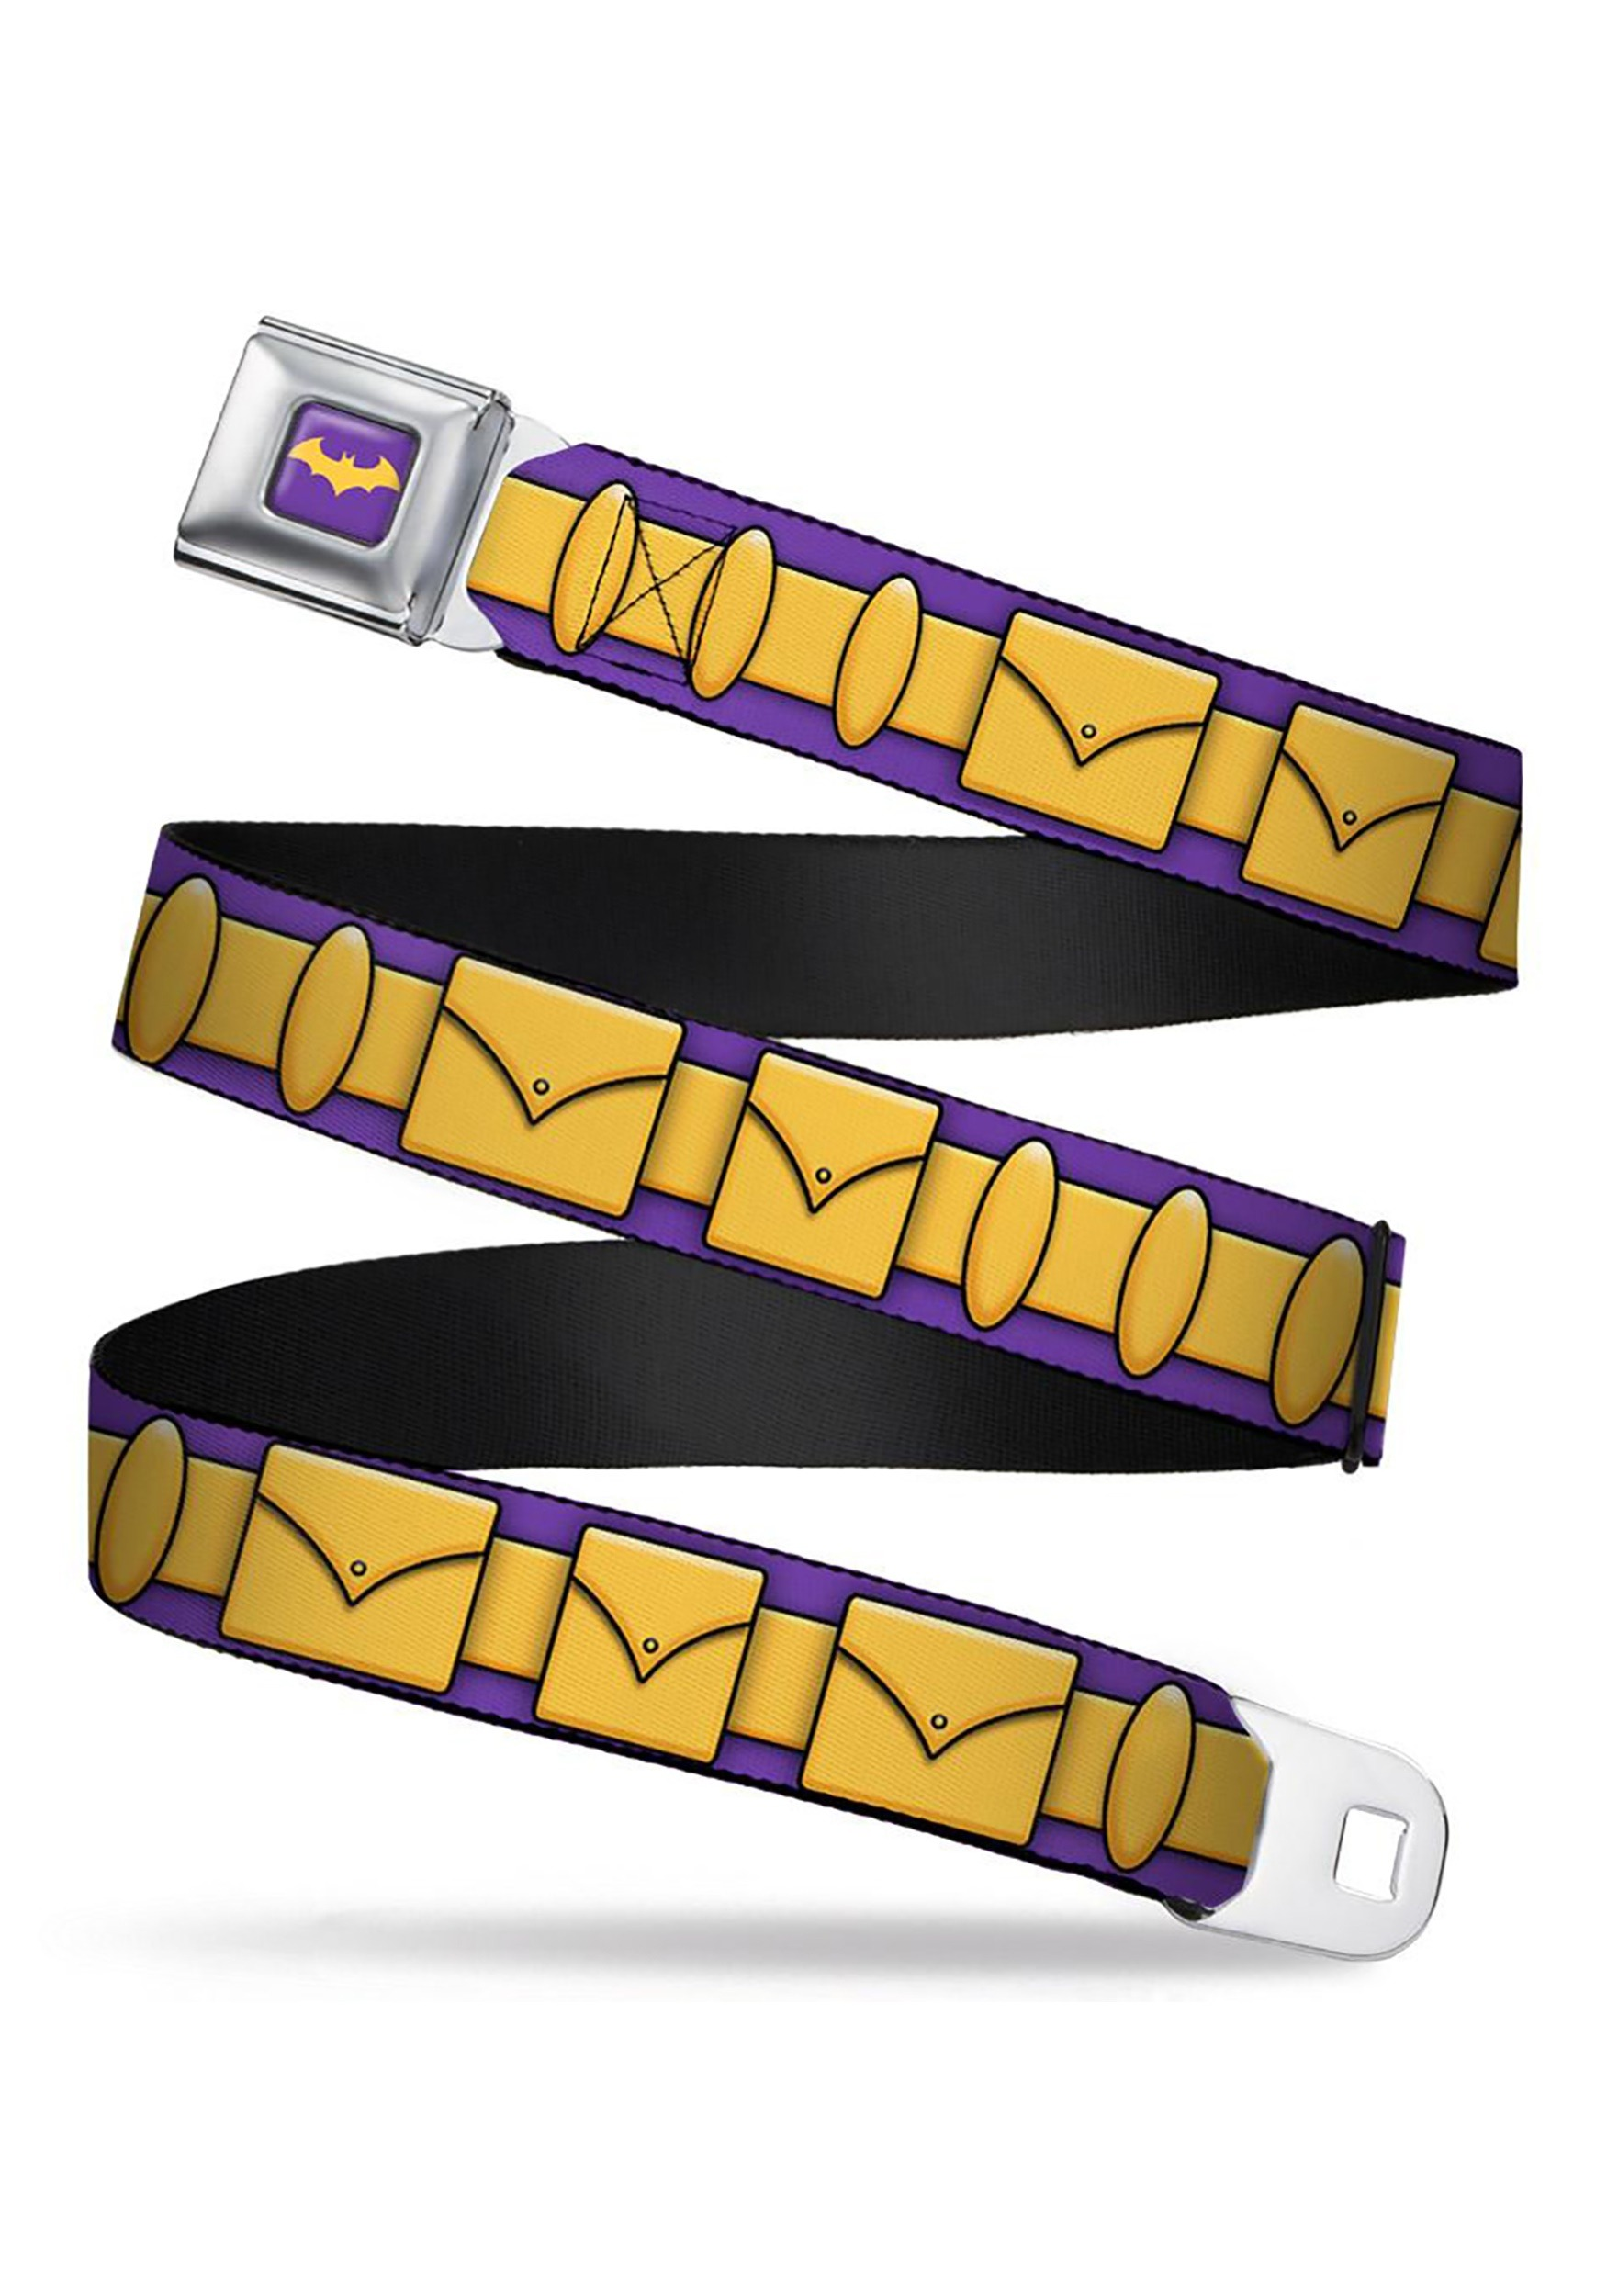 Batgirl_Utility_Belt_Purple_Gold_Seatbelt_Buckle_Belt